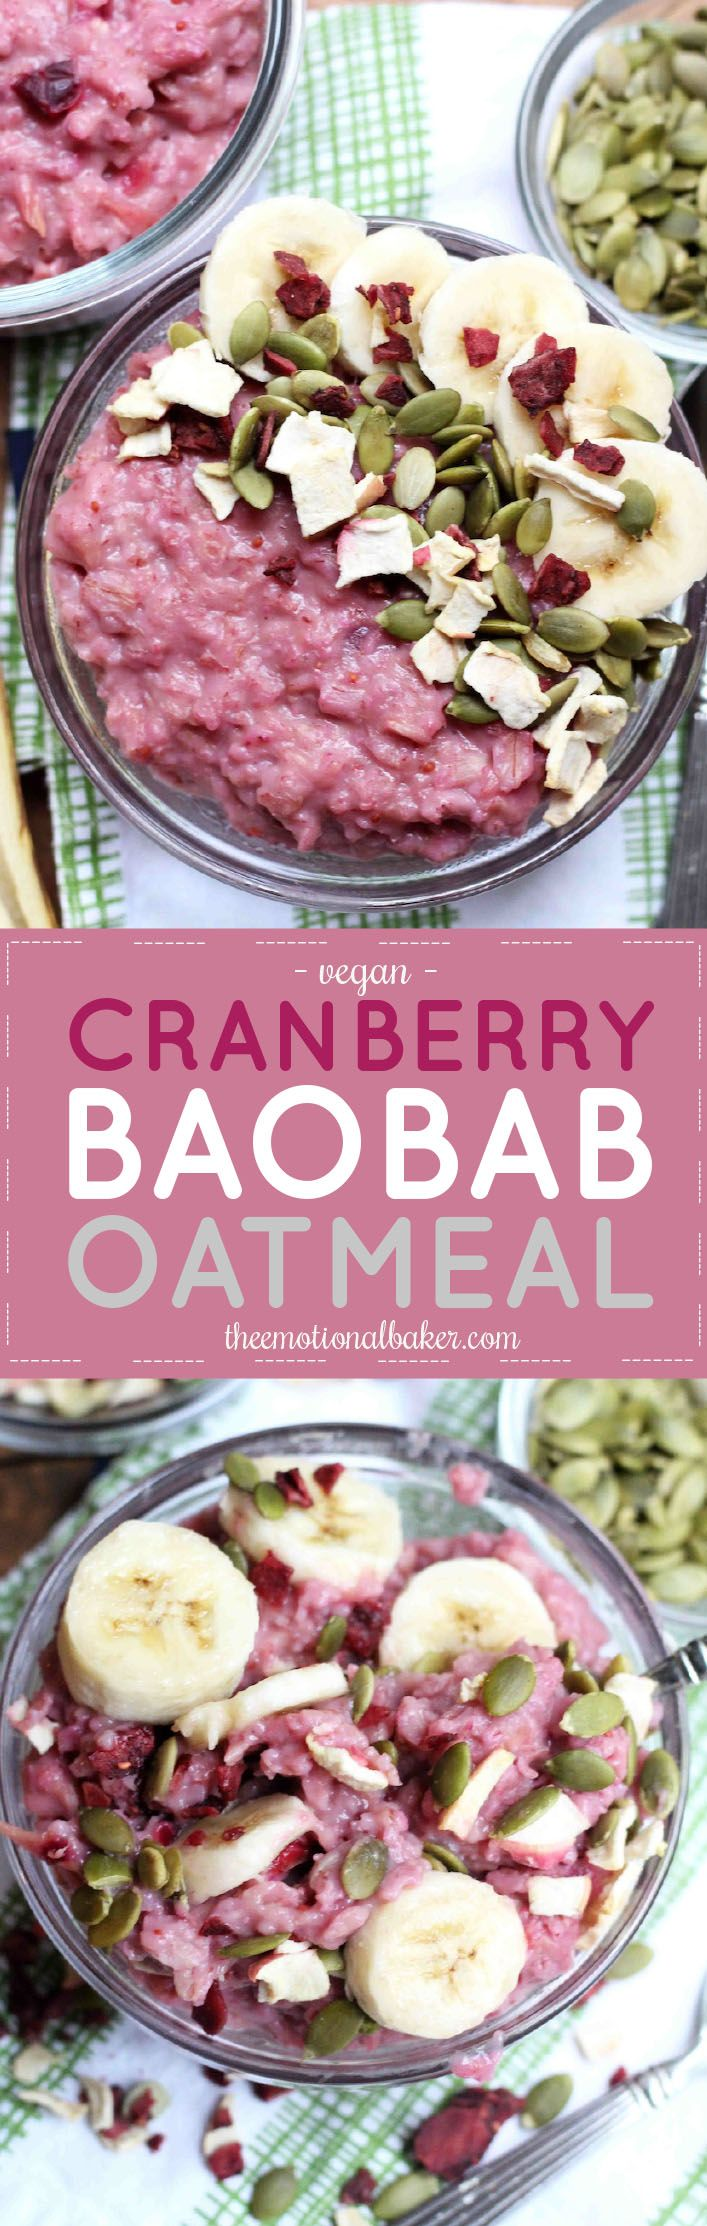 Wake up with a healthy bowl of cranberry oatmeal packed with antioxidants, potassium and fiber.